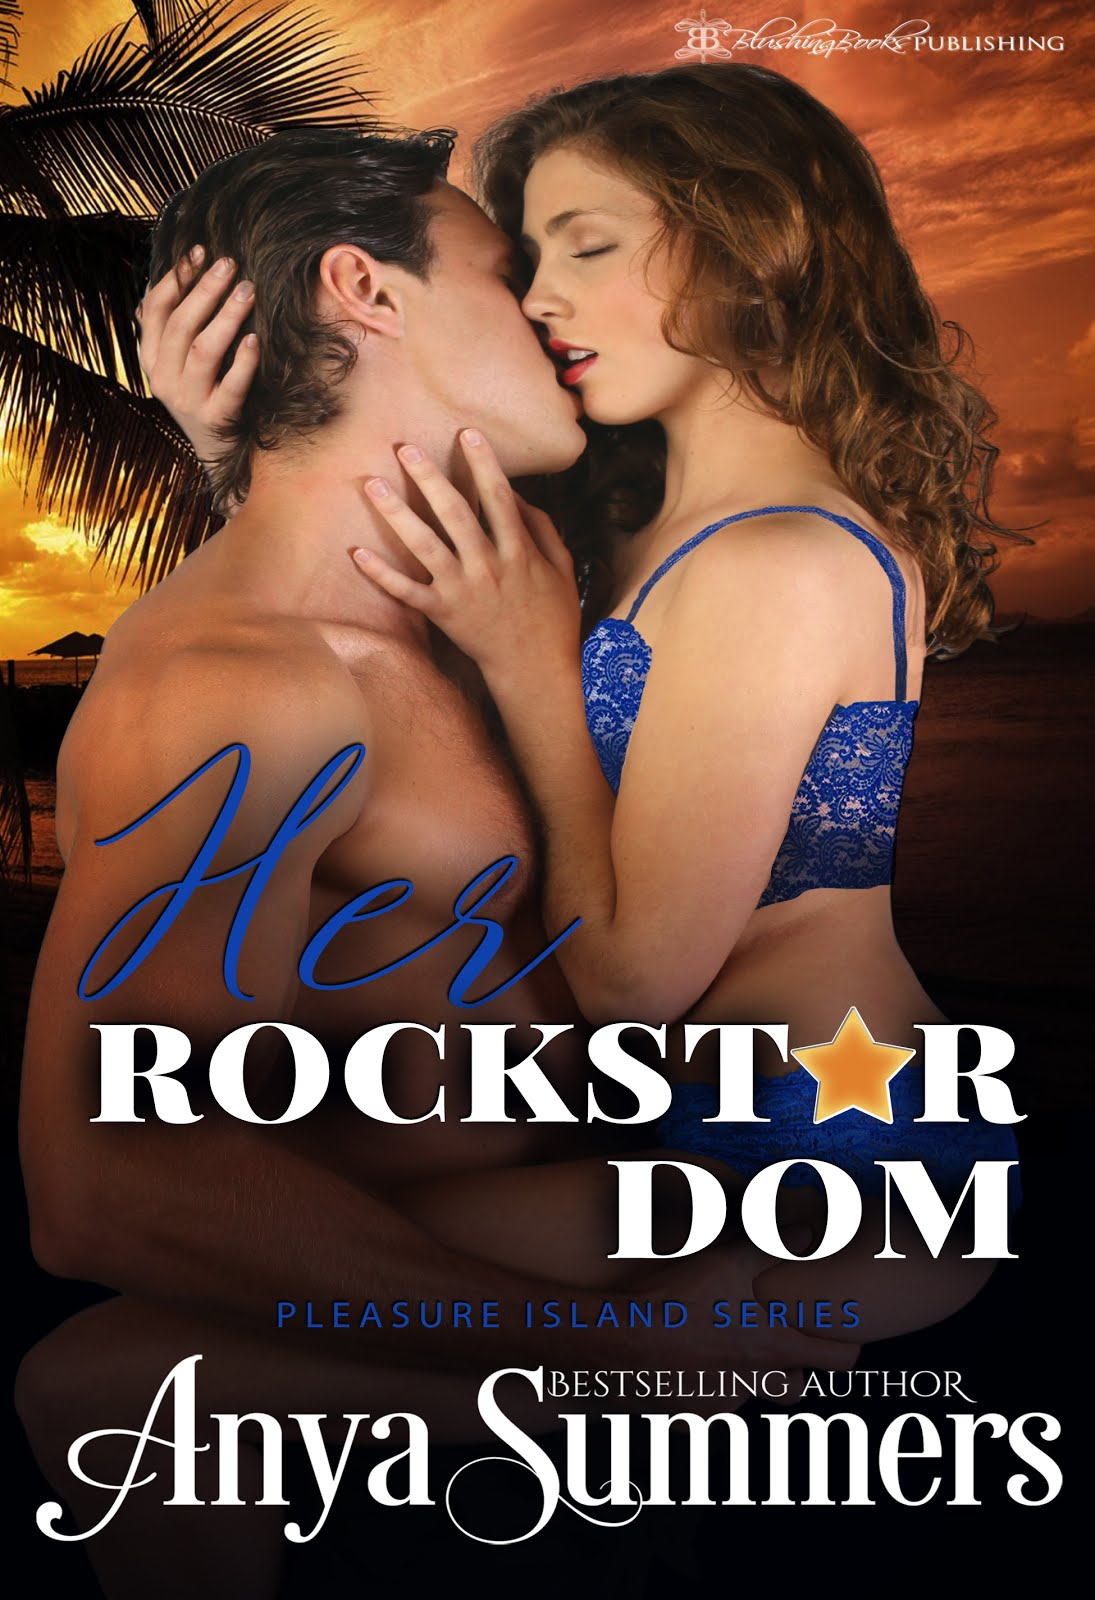 Her Rockstar Dom